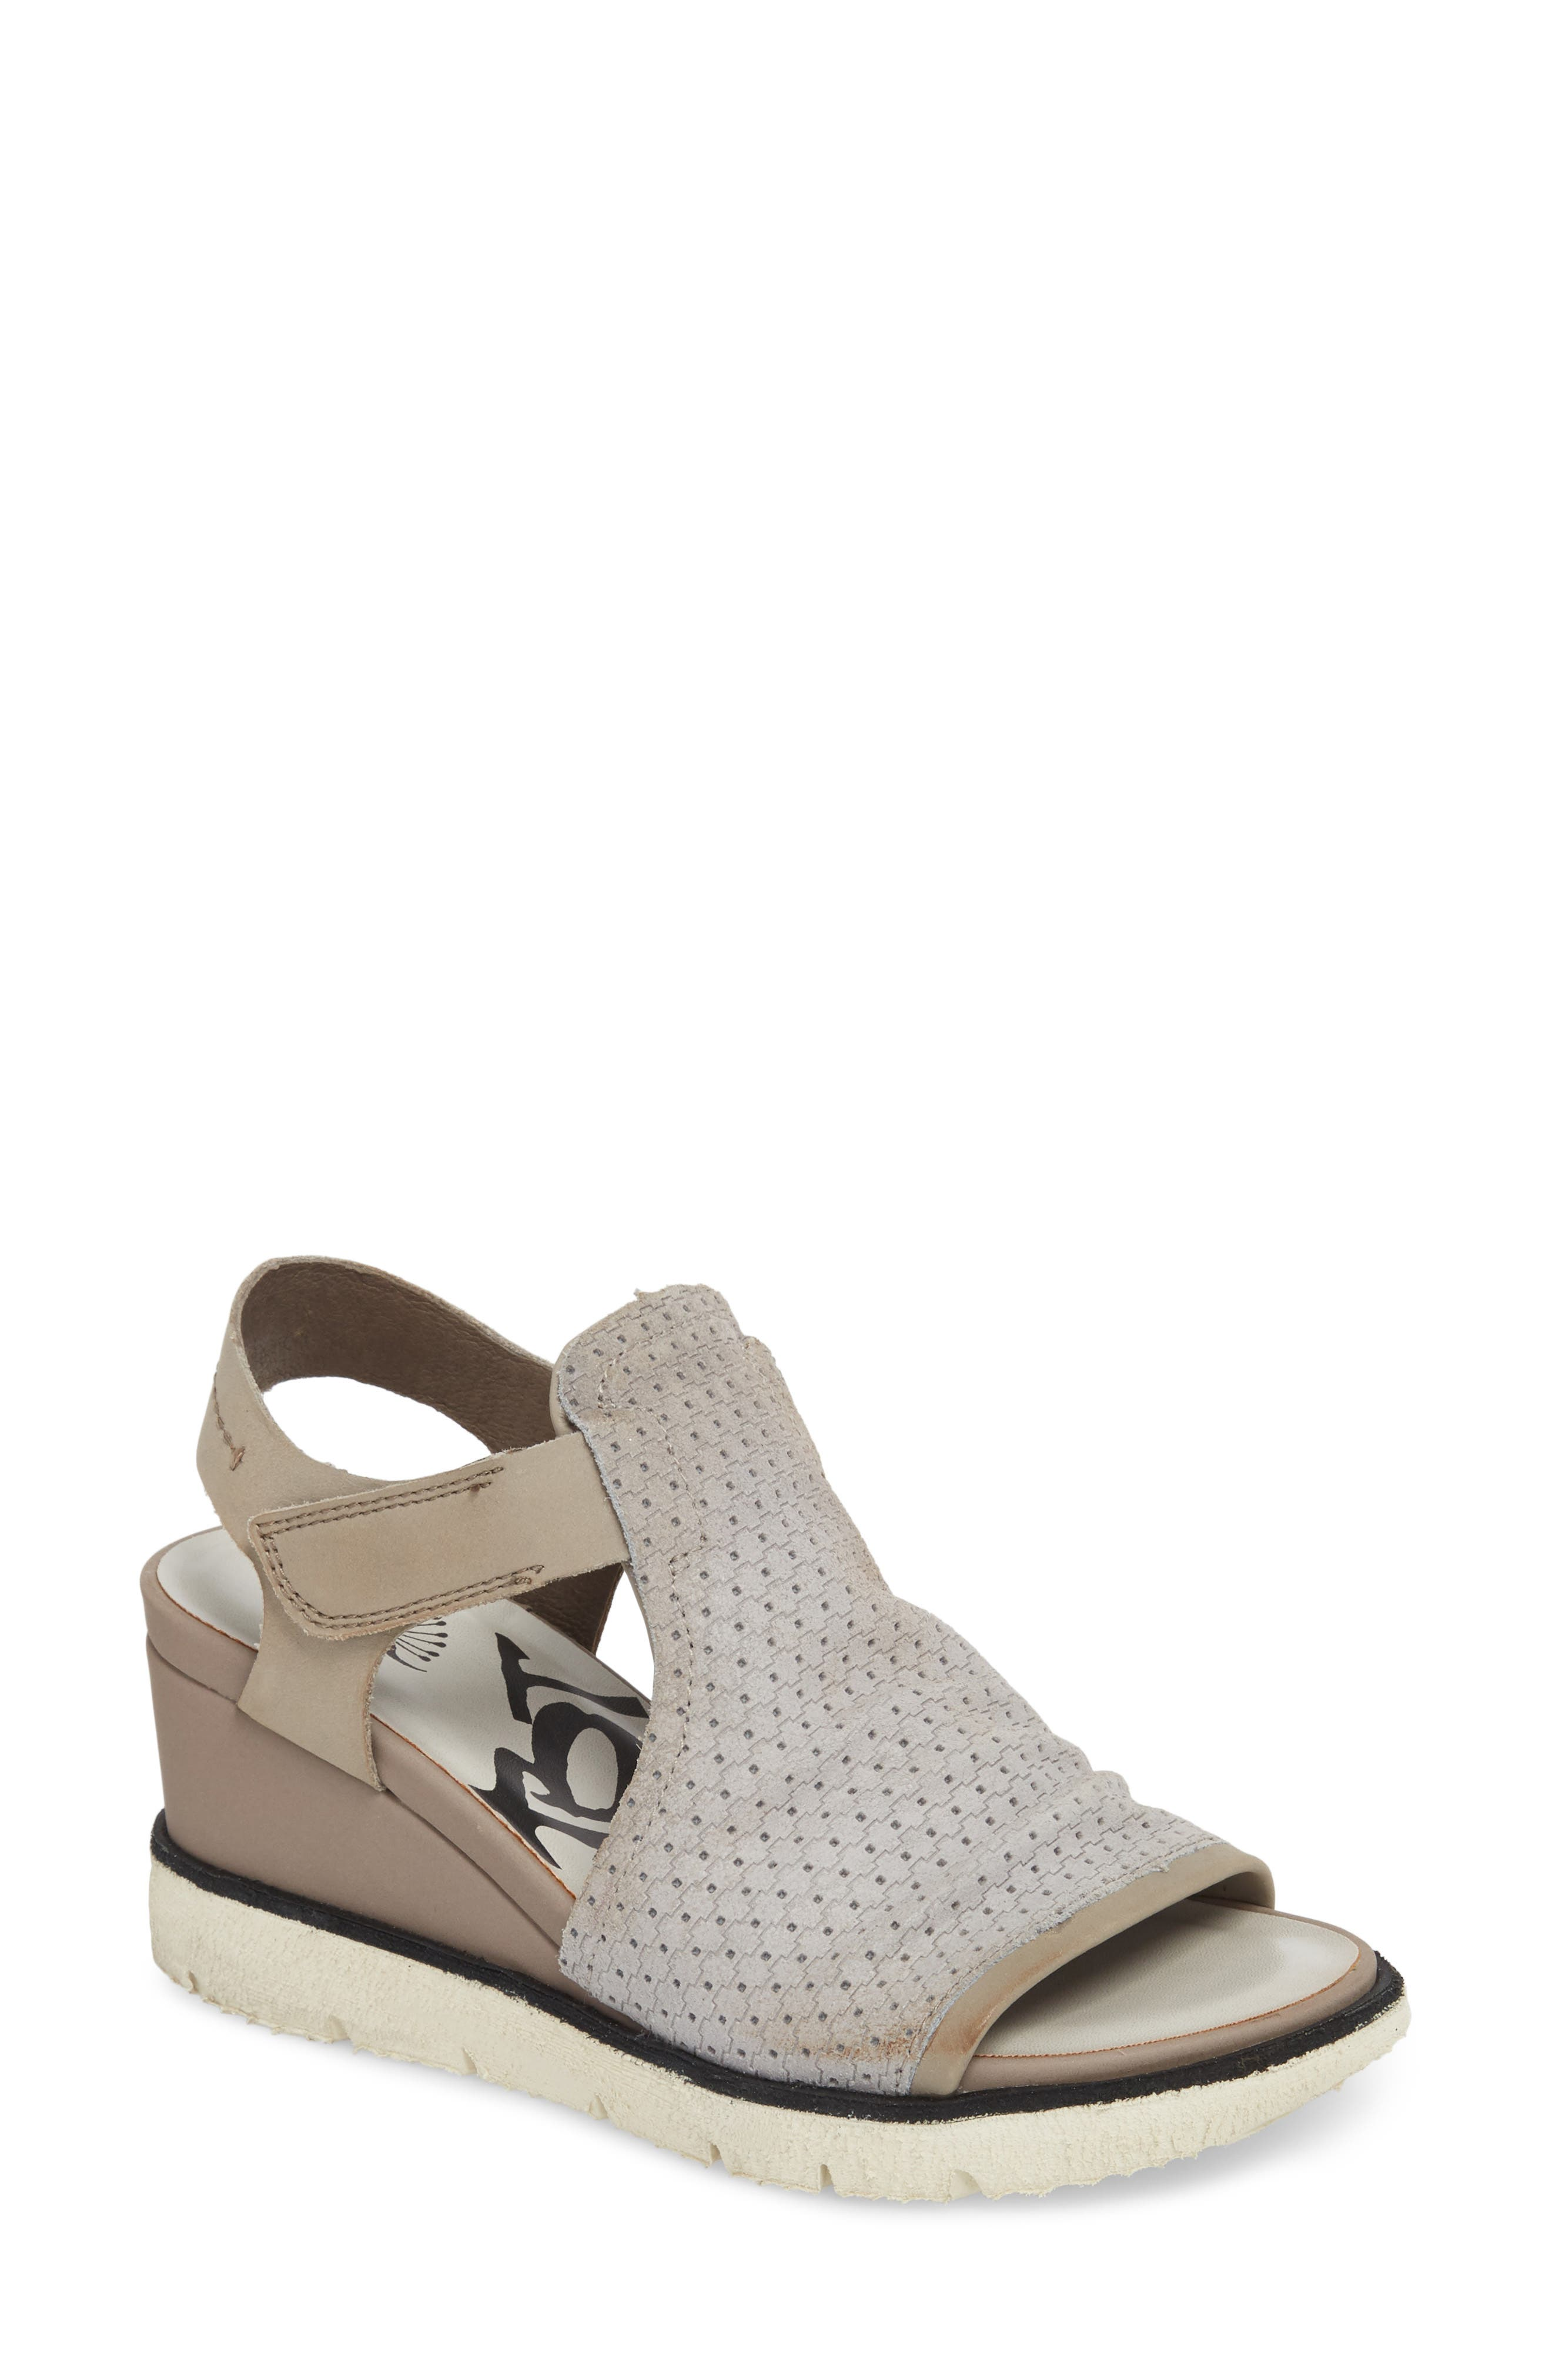 OTBT Mercury Wedge Sandal 29fcePFa